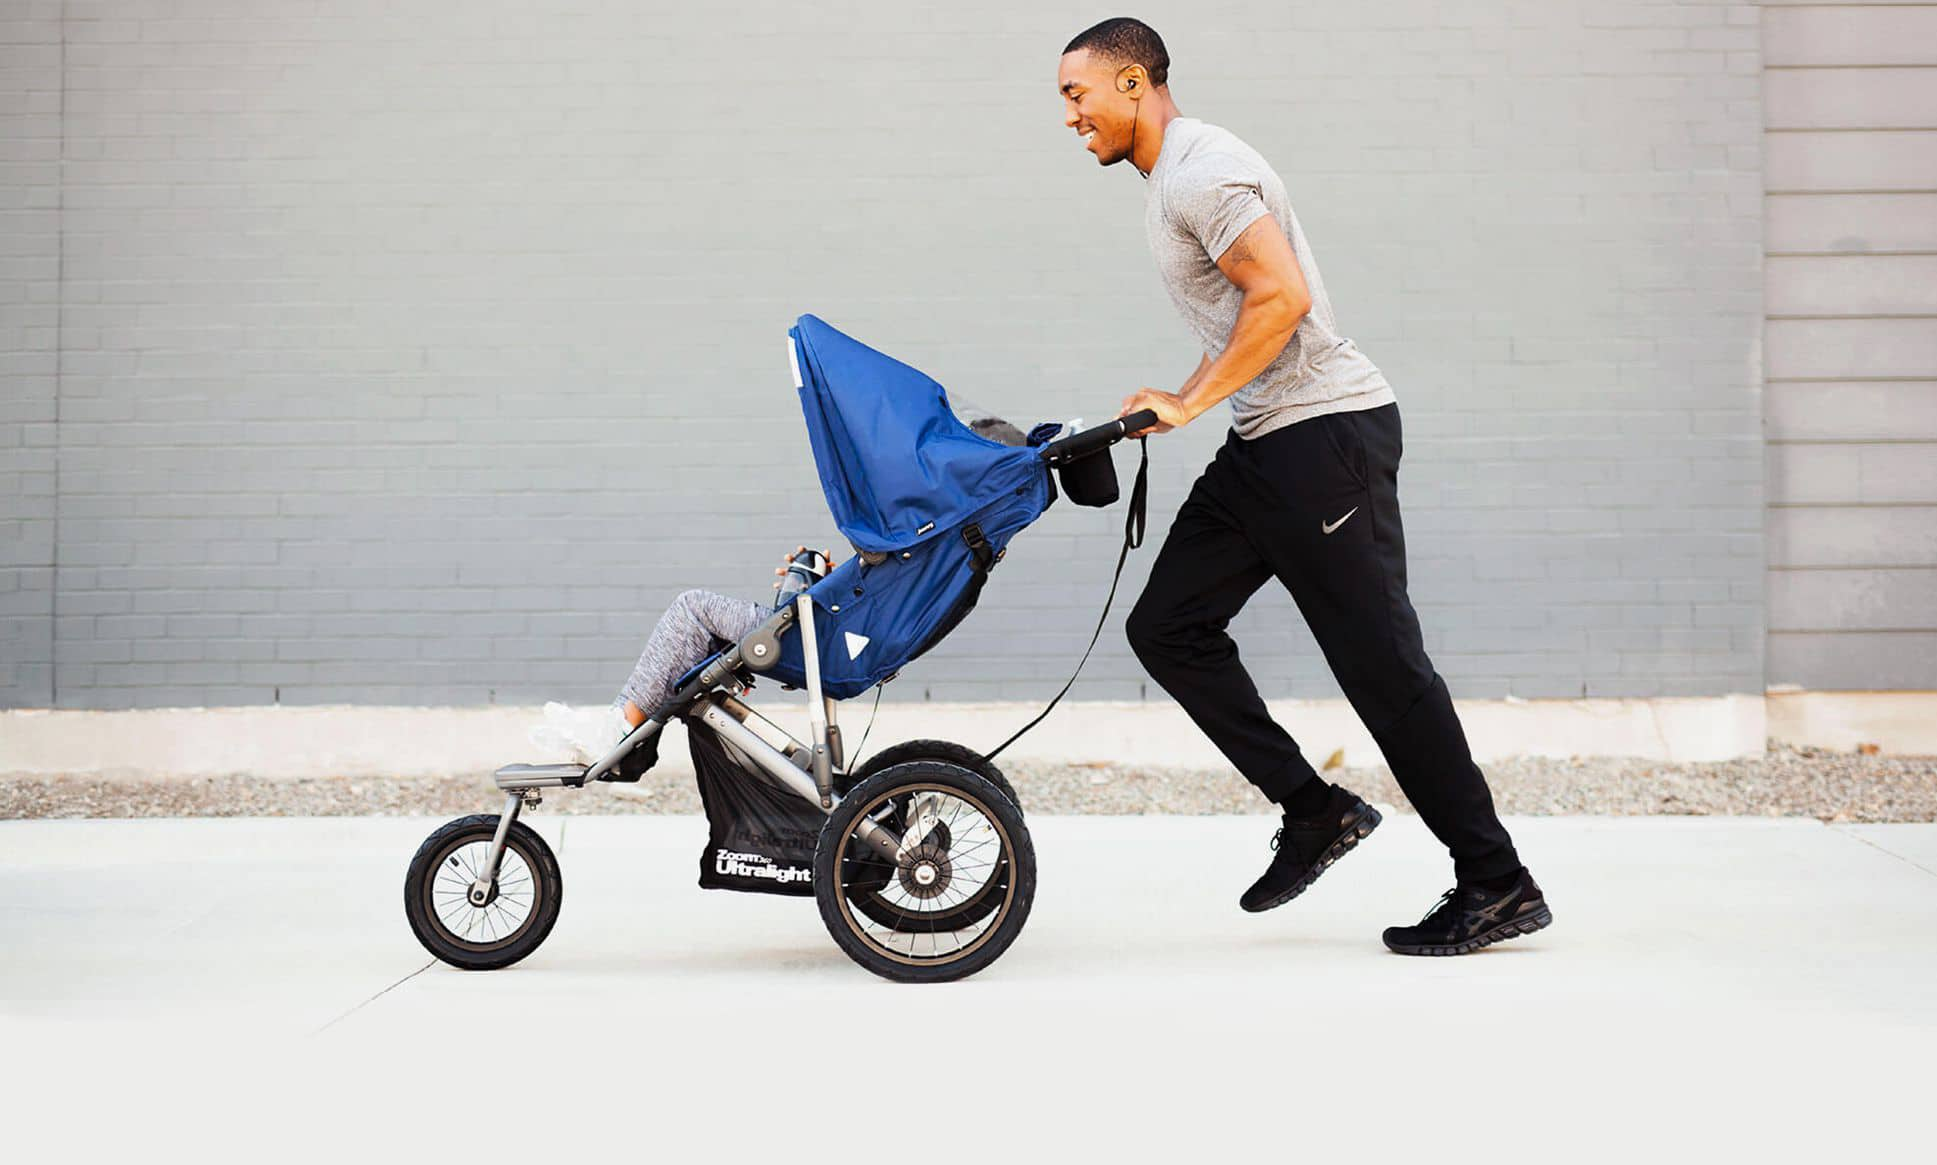 Double Stroller Expensive 8 Best Strollers For Big Kids Oct 2019 Reviews Buying